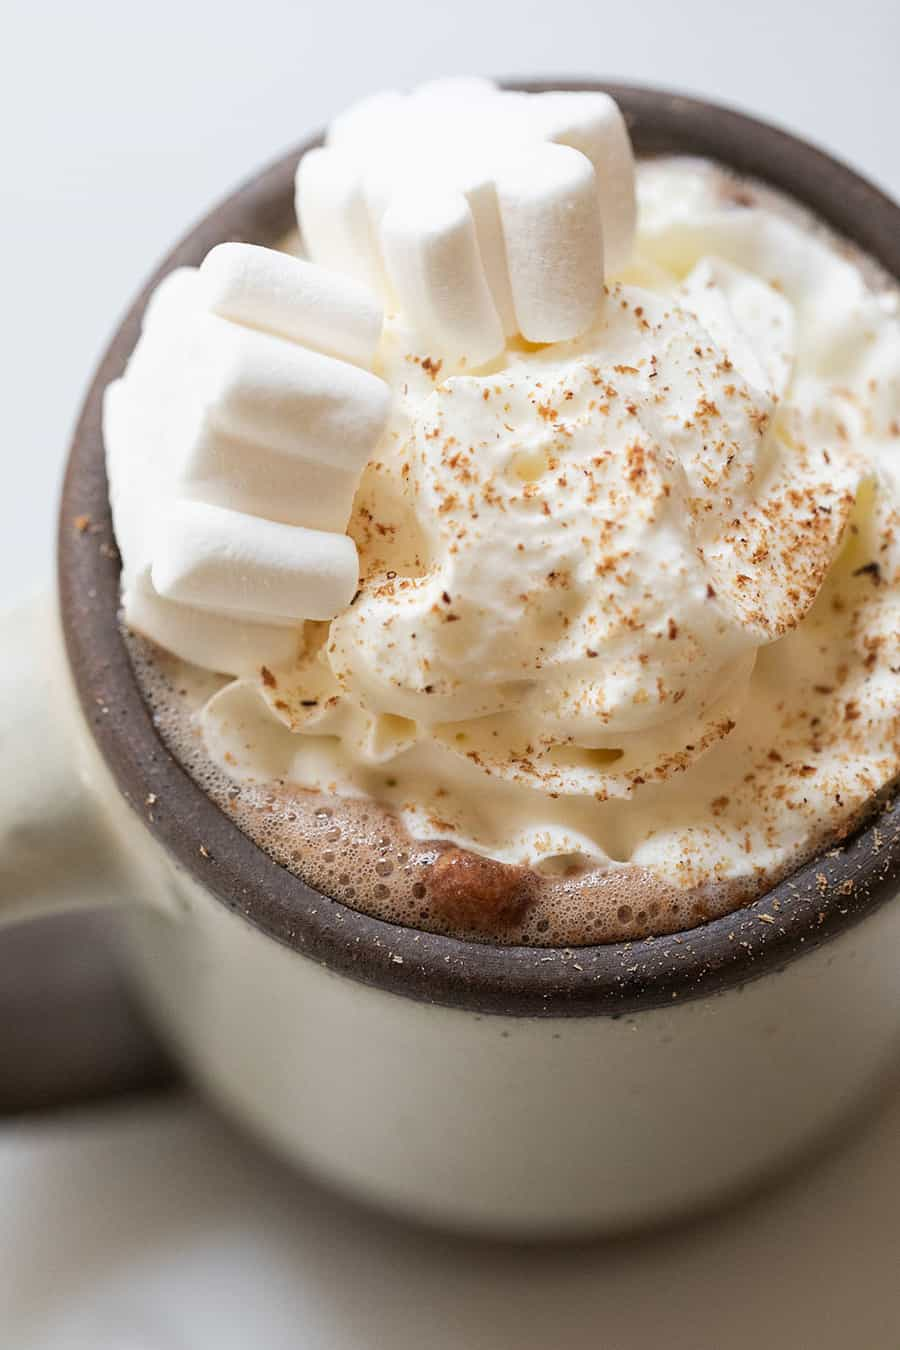 Hot chocolate topped with whipped cream, nutmeg and marshmallows.